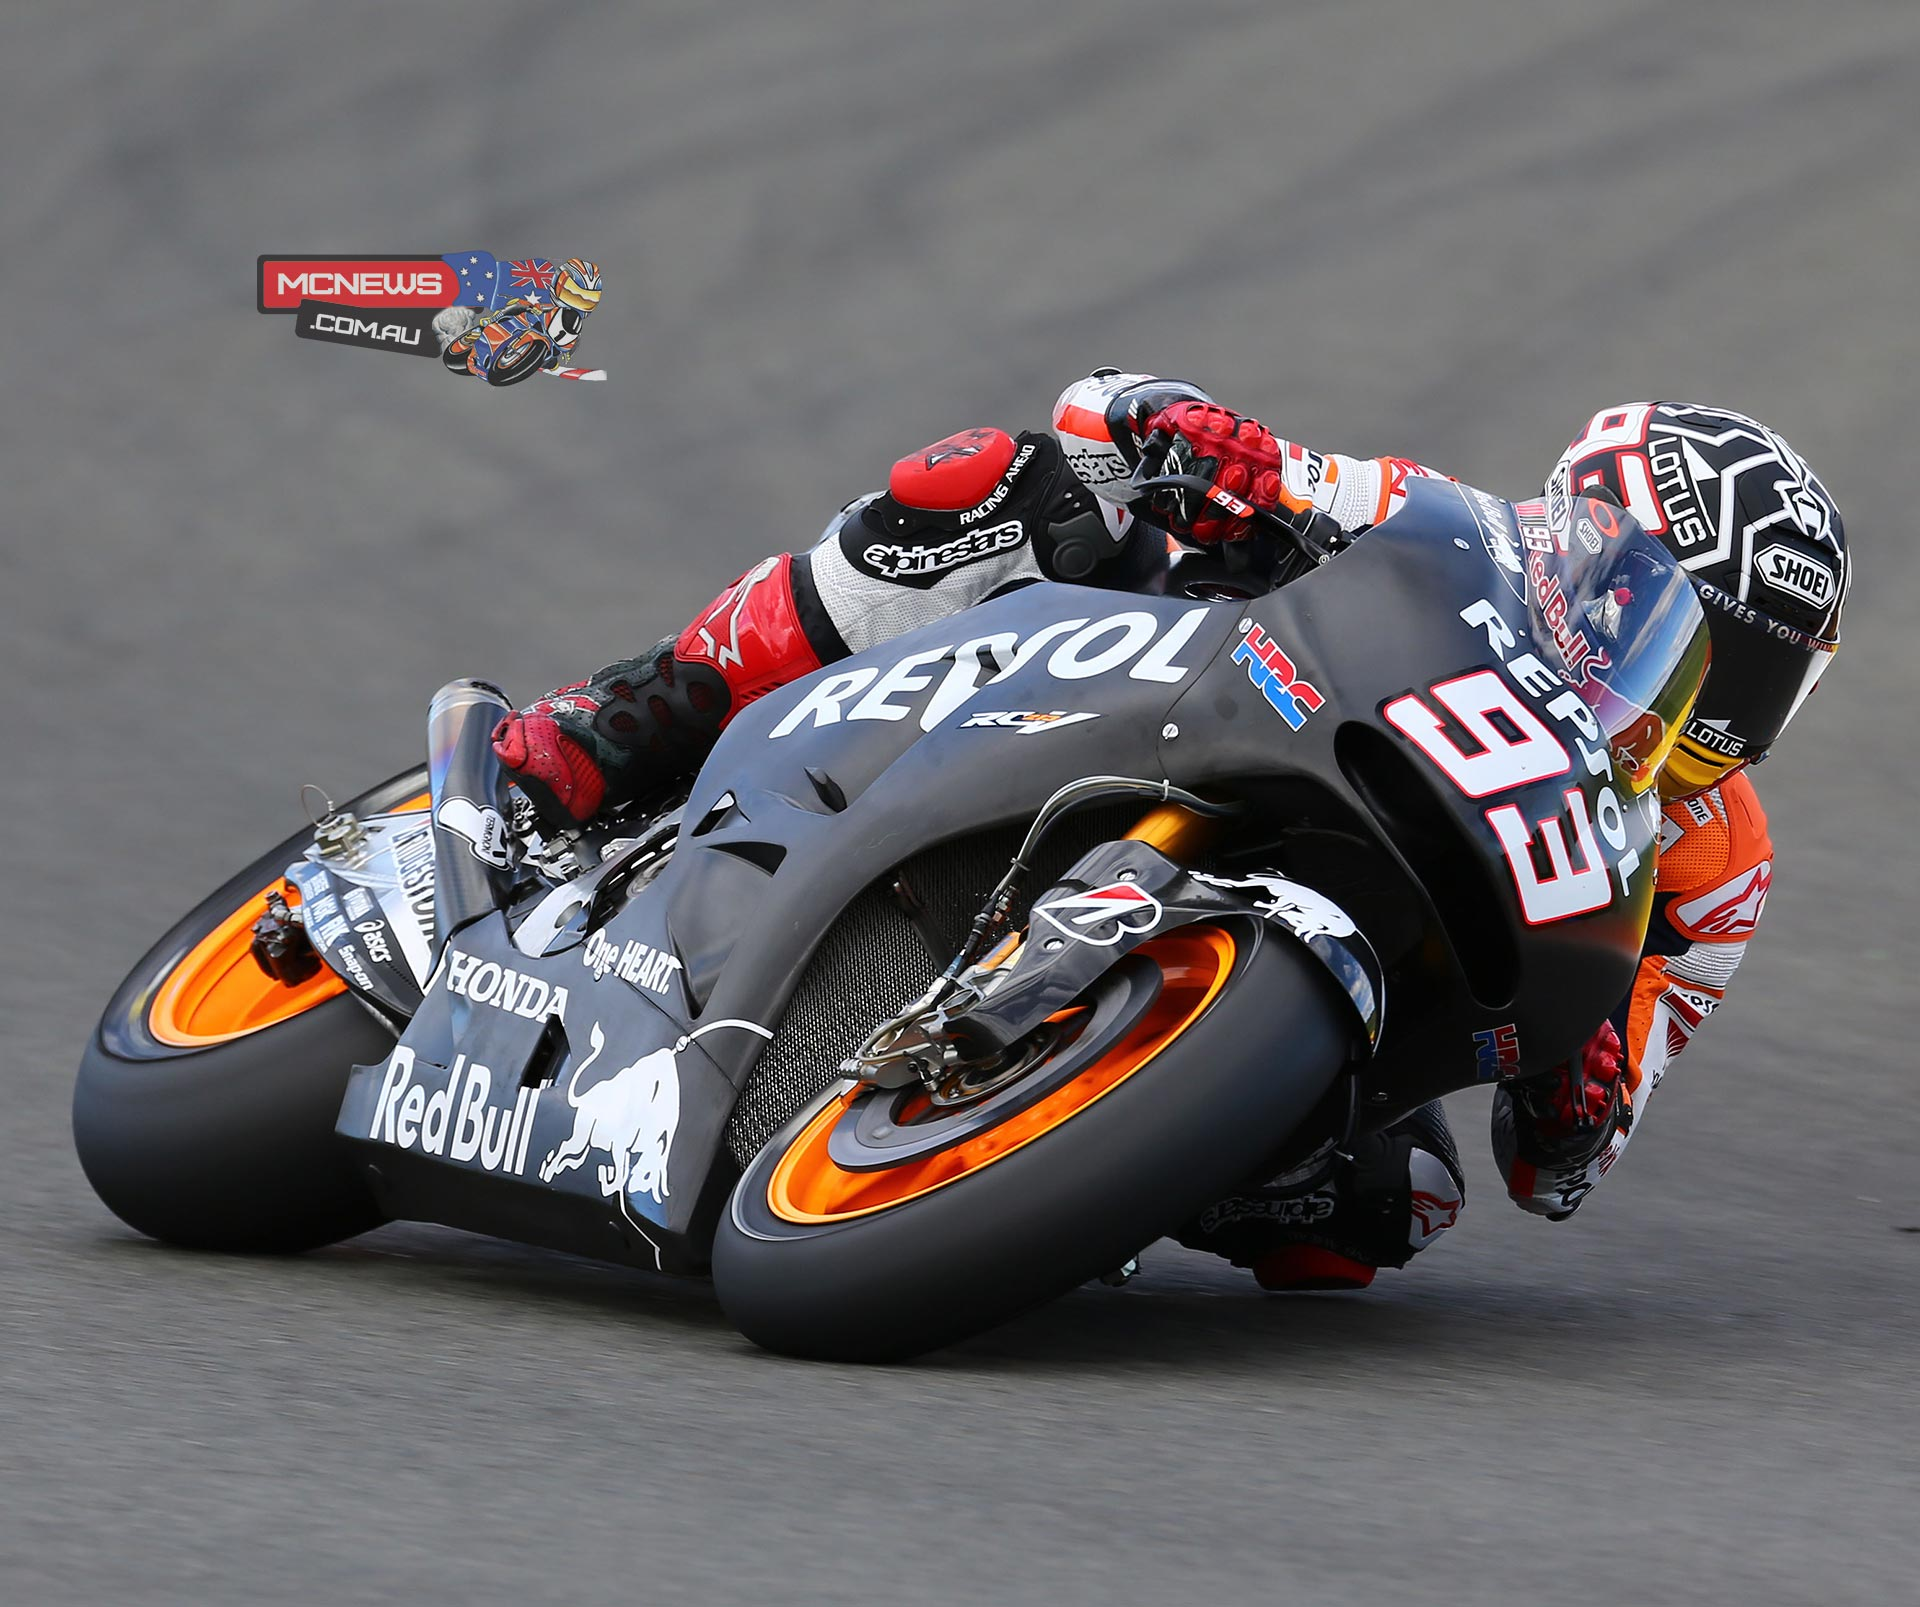 """Marc Marquez - 1st - 1'30.973 (68 laps) - """"Today went well because we were able to gather a lot of data. We tried out both bikes: this year's and the 2015 machine. The new prototype has more potential in some aspects but, as is normal, I felt better with the 2014 bike - with which I set my fastest time. It's true that in one day we have not had too much time to work on setting up the new prototype, but I think that it has potential and that this test has been important for Honda because of the information obtained. The HRC engineers have also found out which way to go this Winter to try to improve for the test in Malaysia, which takes place in February. Thanks to all my team and to all the fans for an unforgettable 2014!"""""""